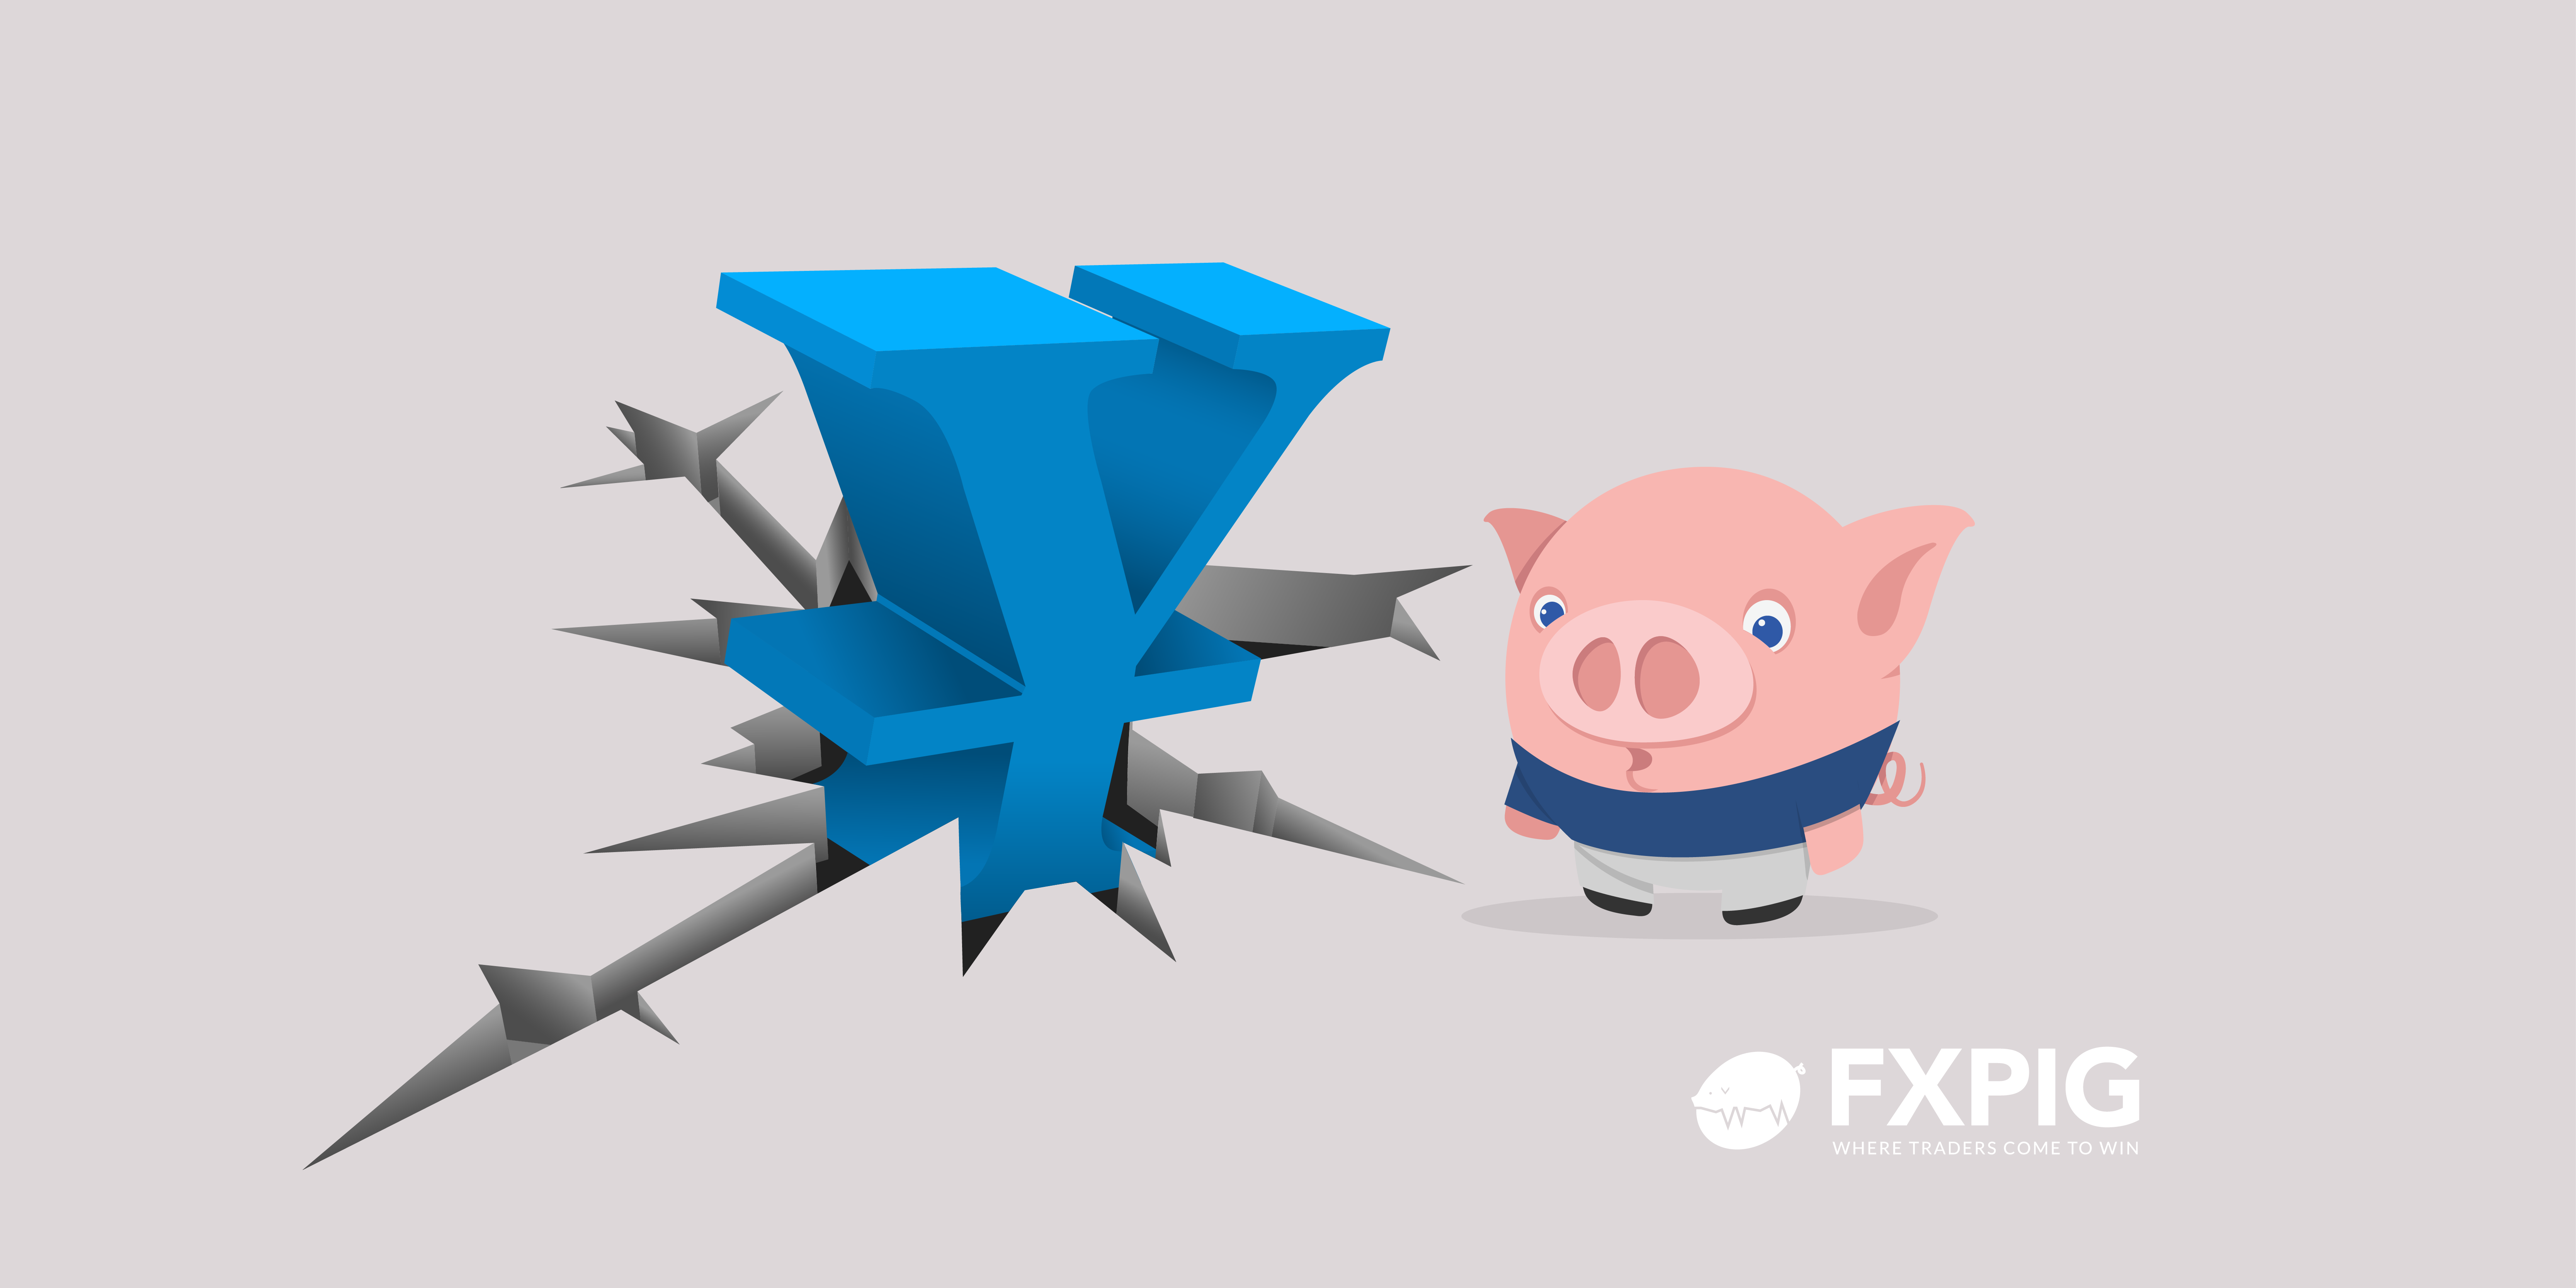 EURJPY_down-move-over_Forex_FXPIG